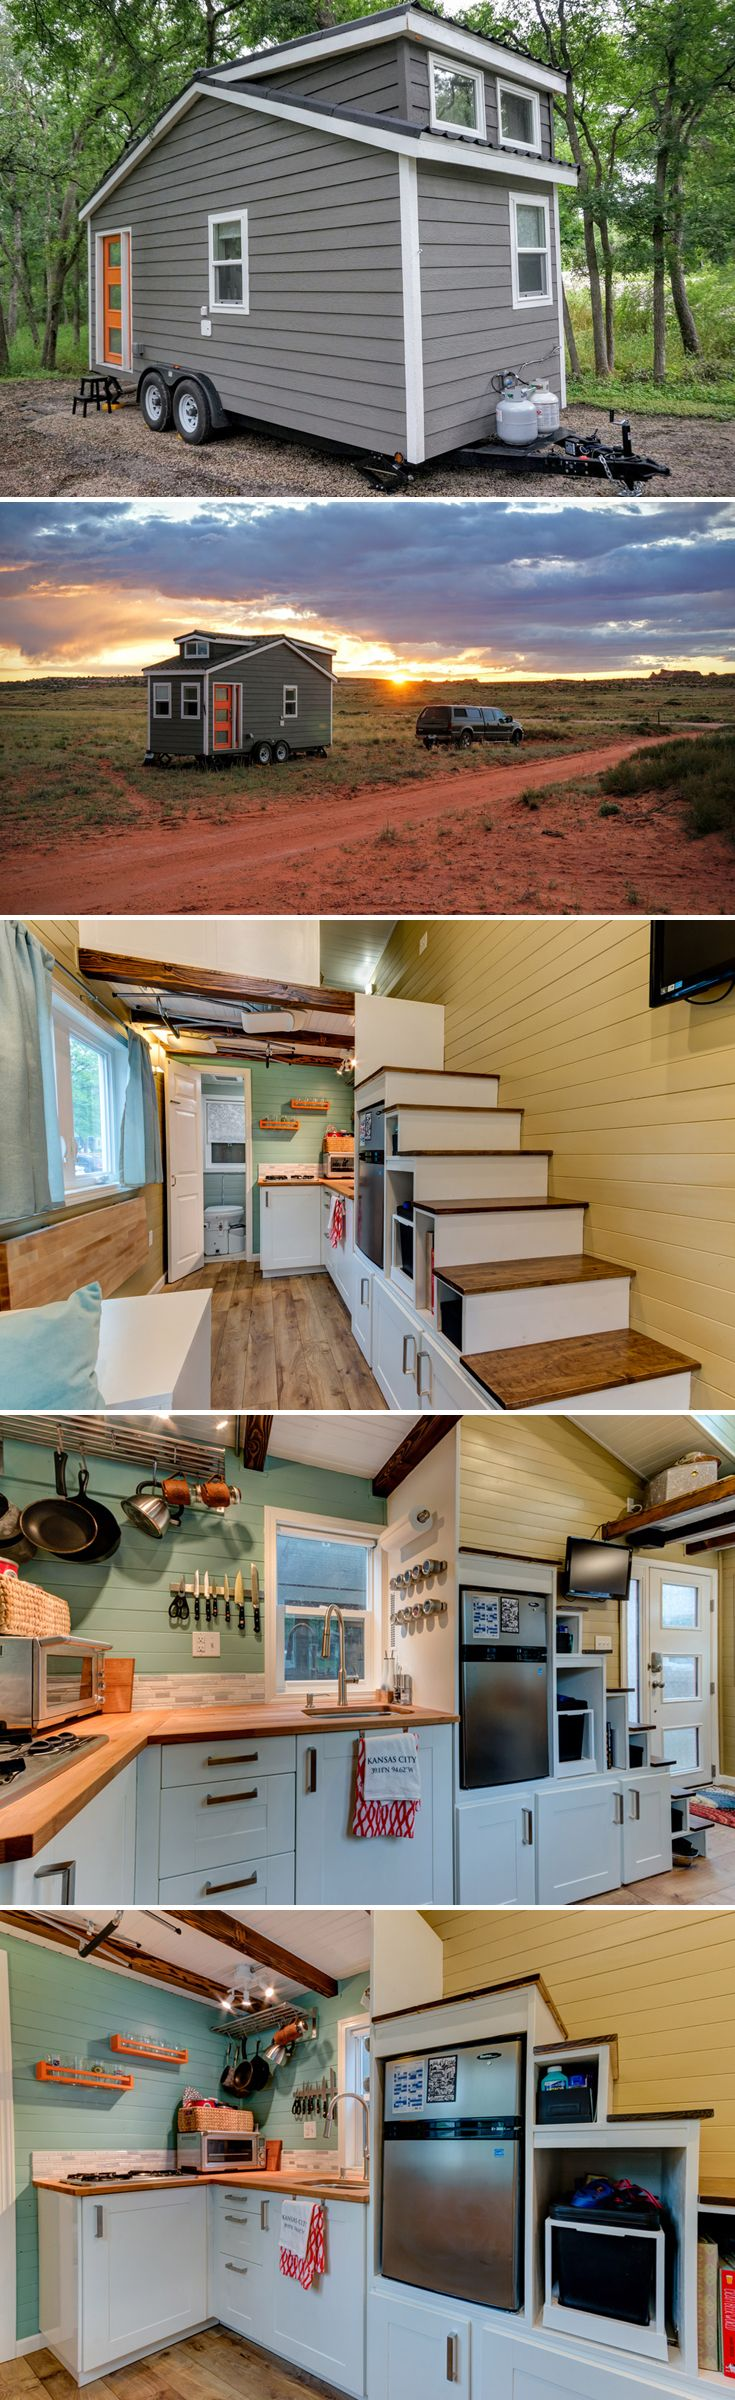 The Wanderlust is a 20' tiny house based on Tumbleweed Tiny House Company's Linden model. The owners bought it as a shell and finished it themselves.